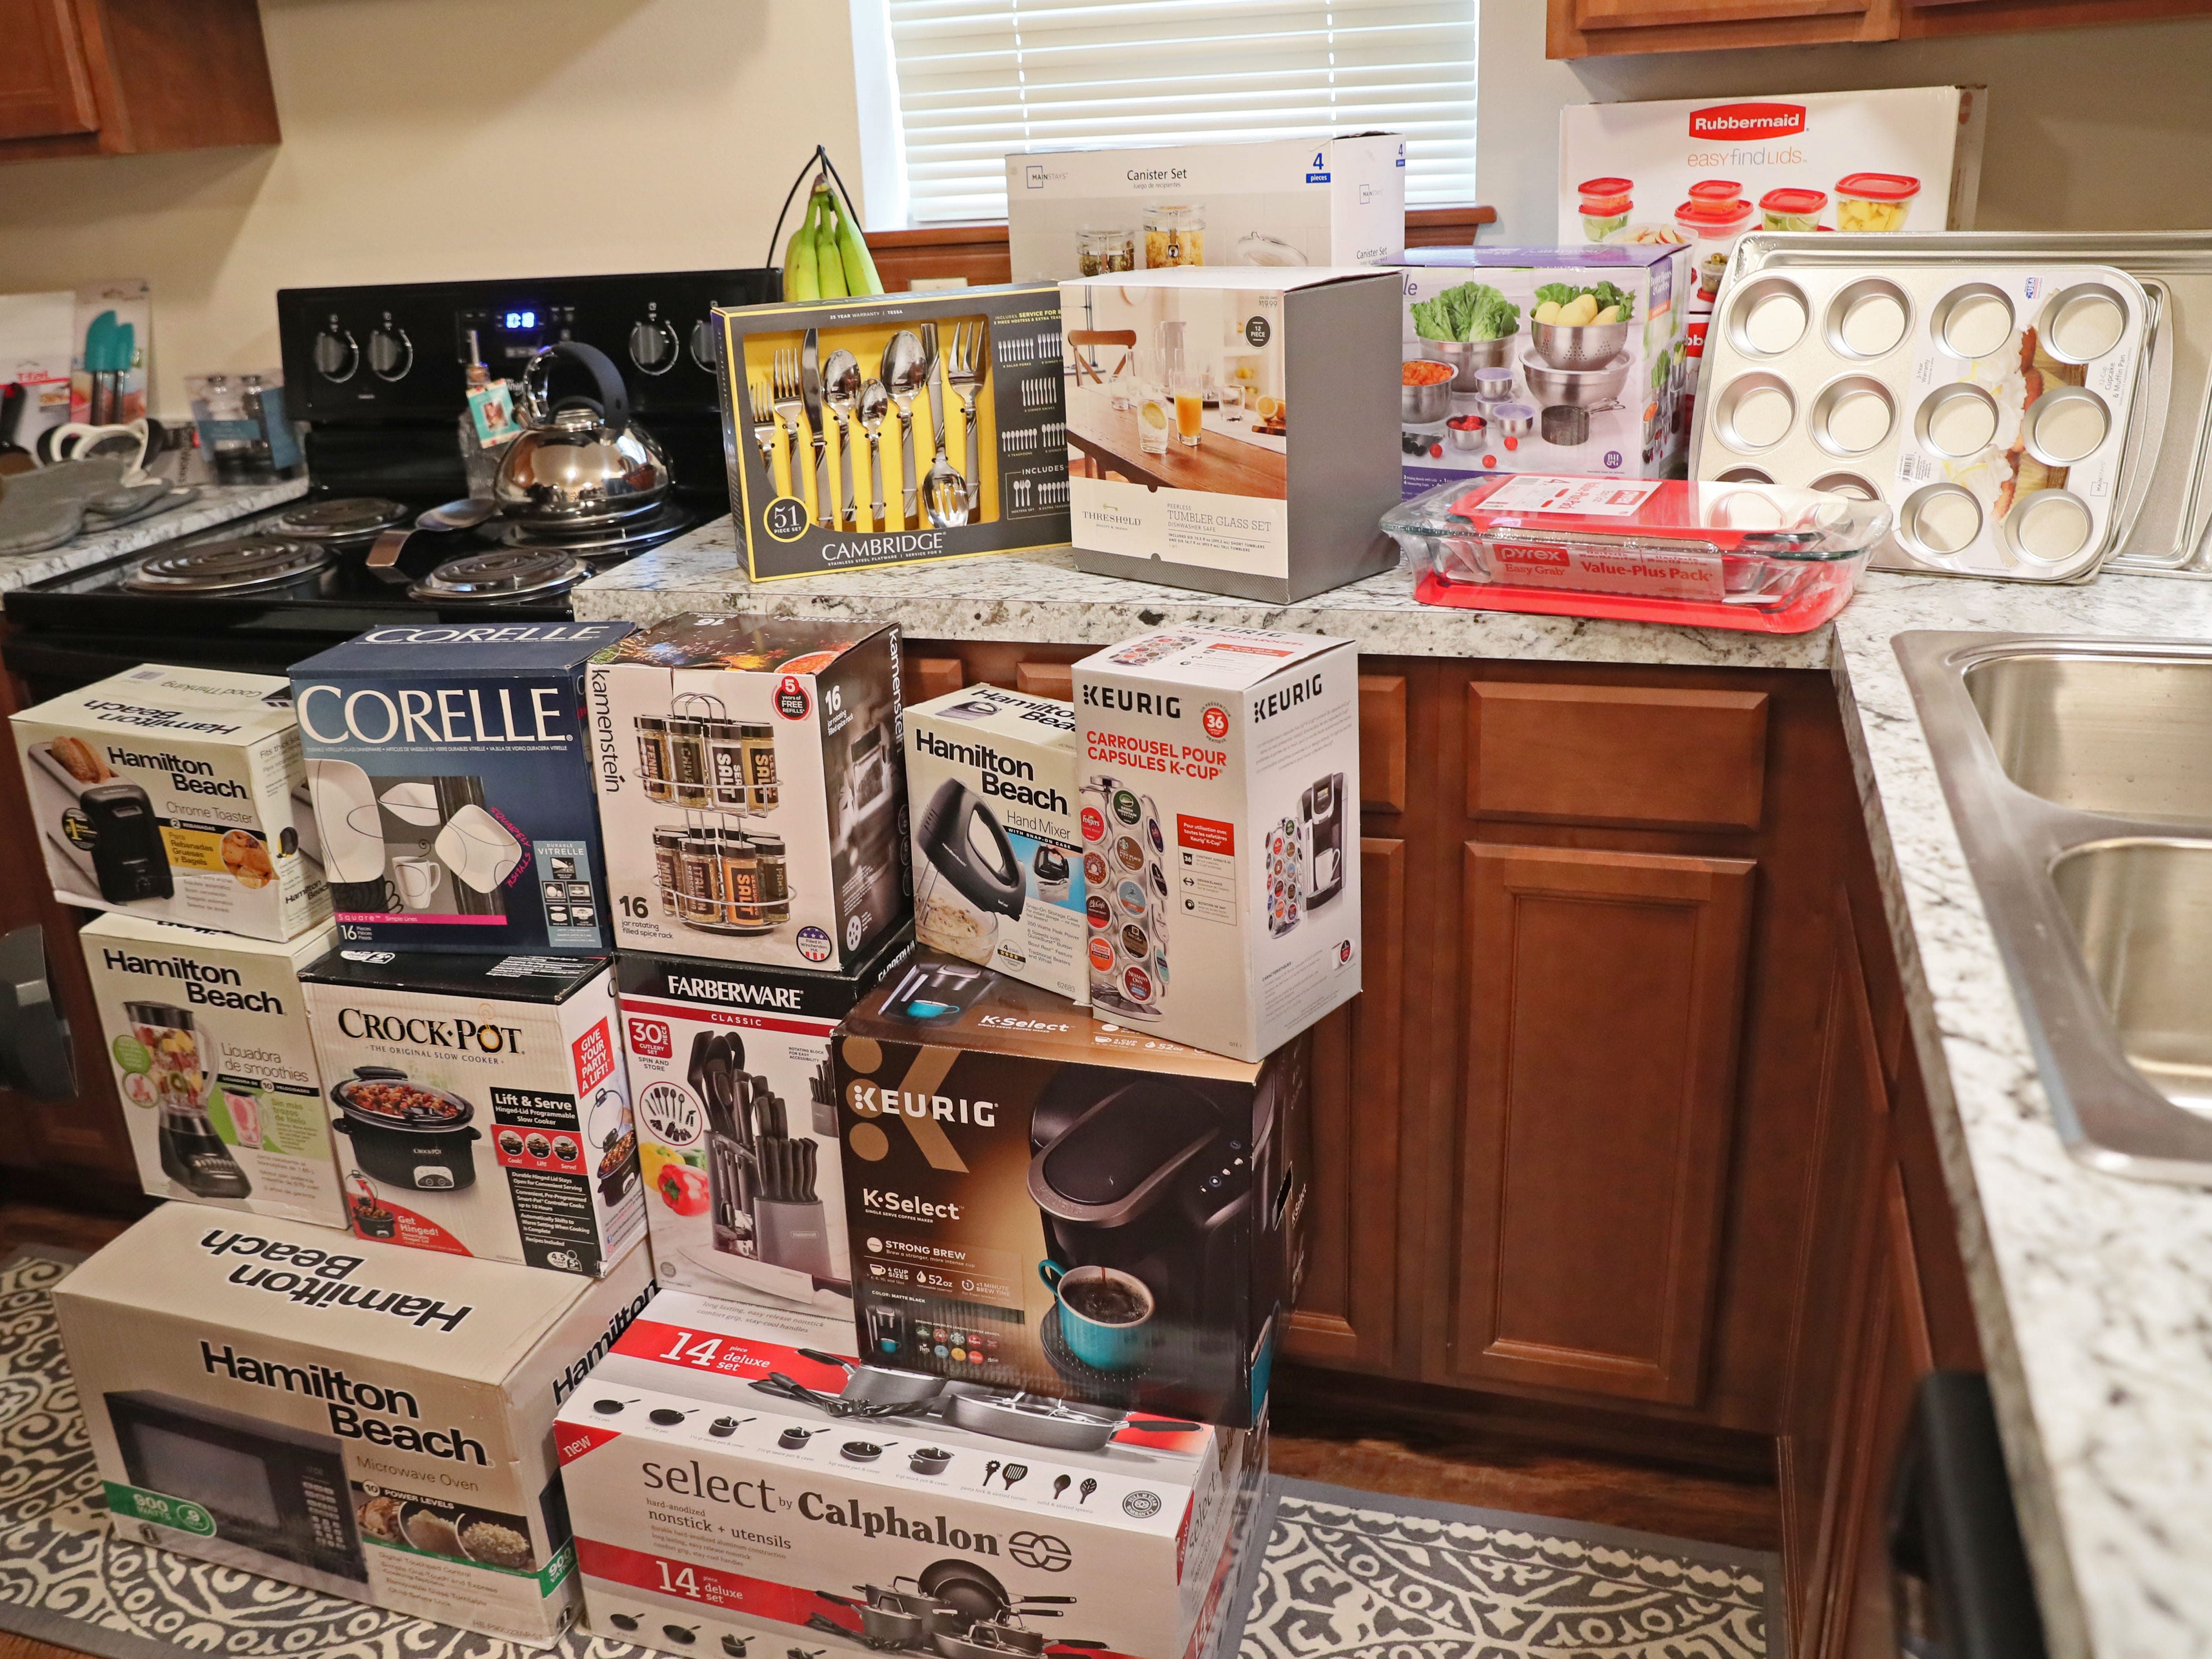 Kitchen items await to be unboxed.